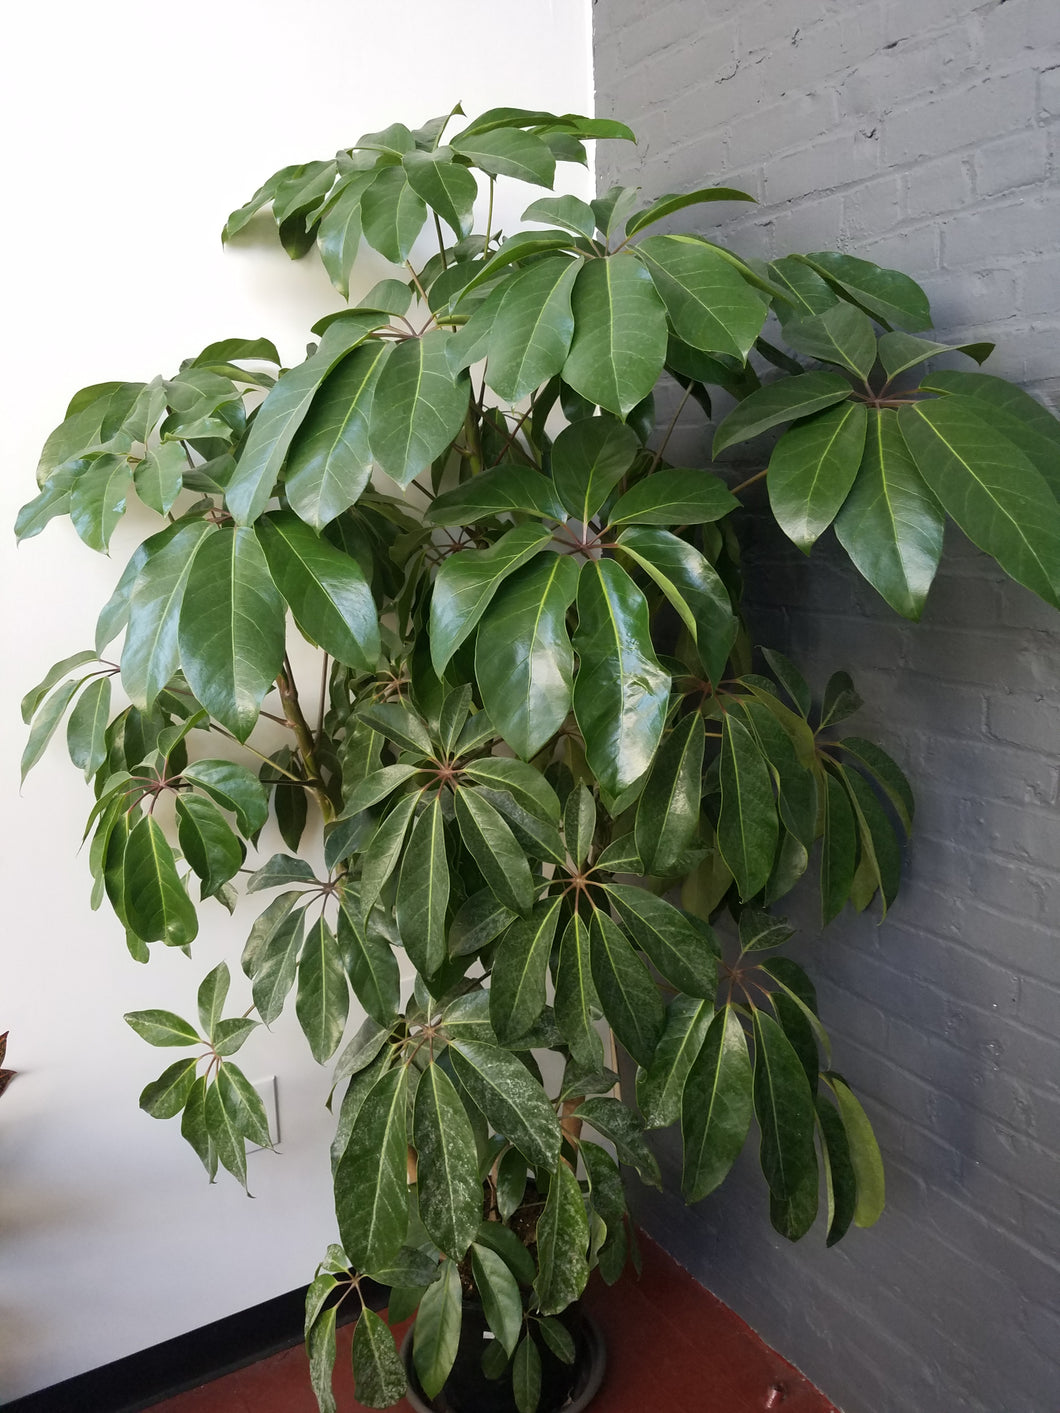 Schefflera amate 'Umbrella Tree'